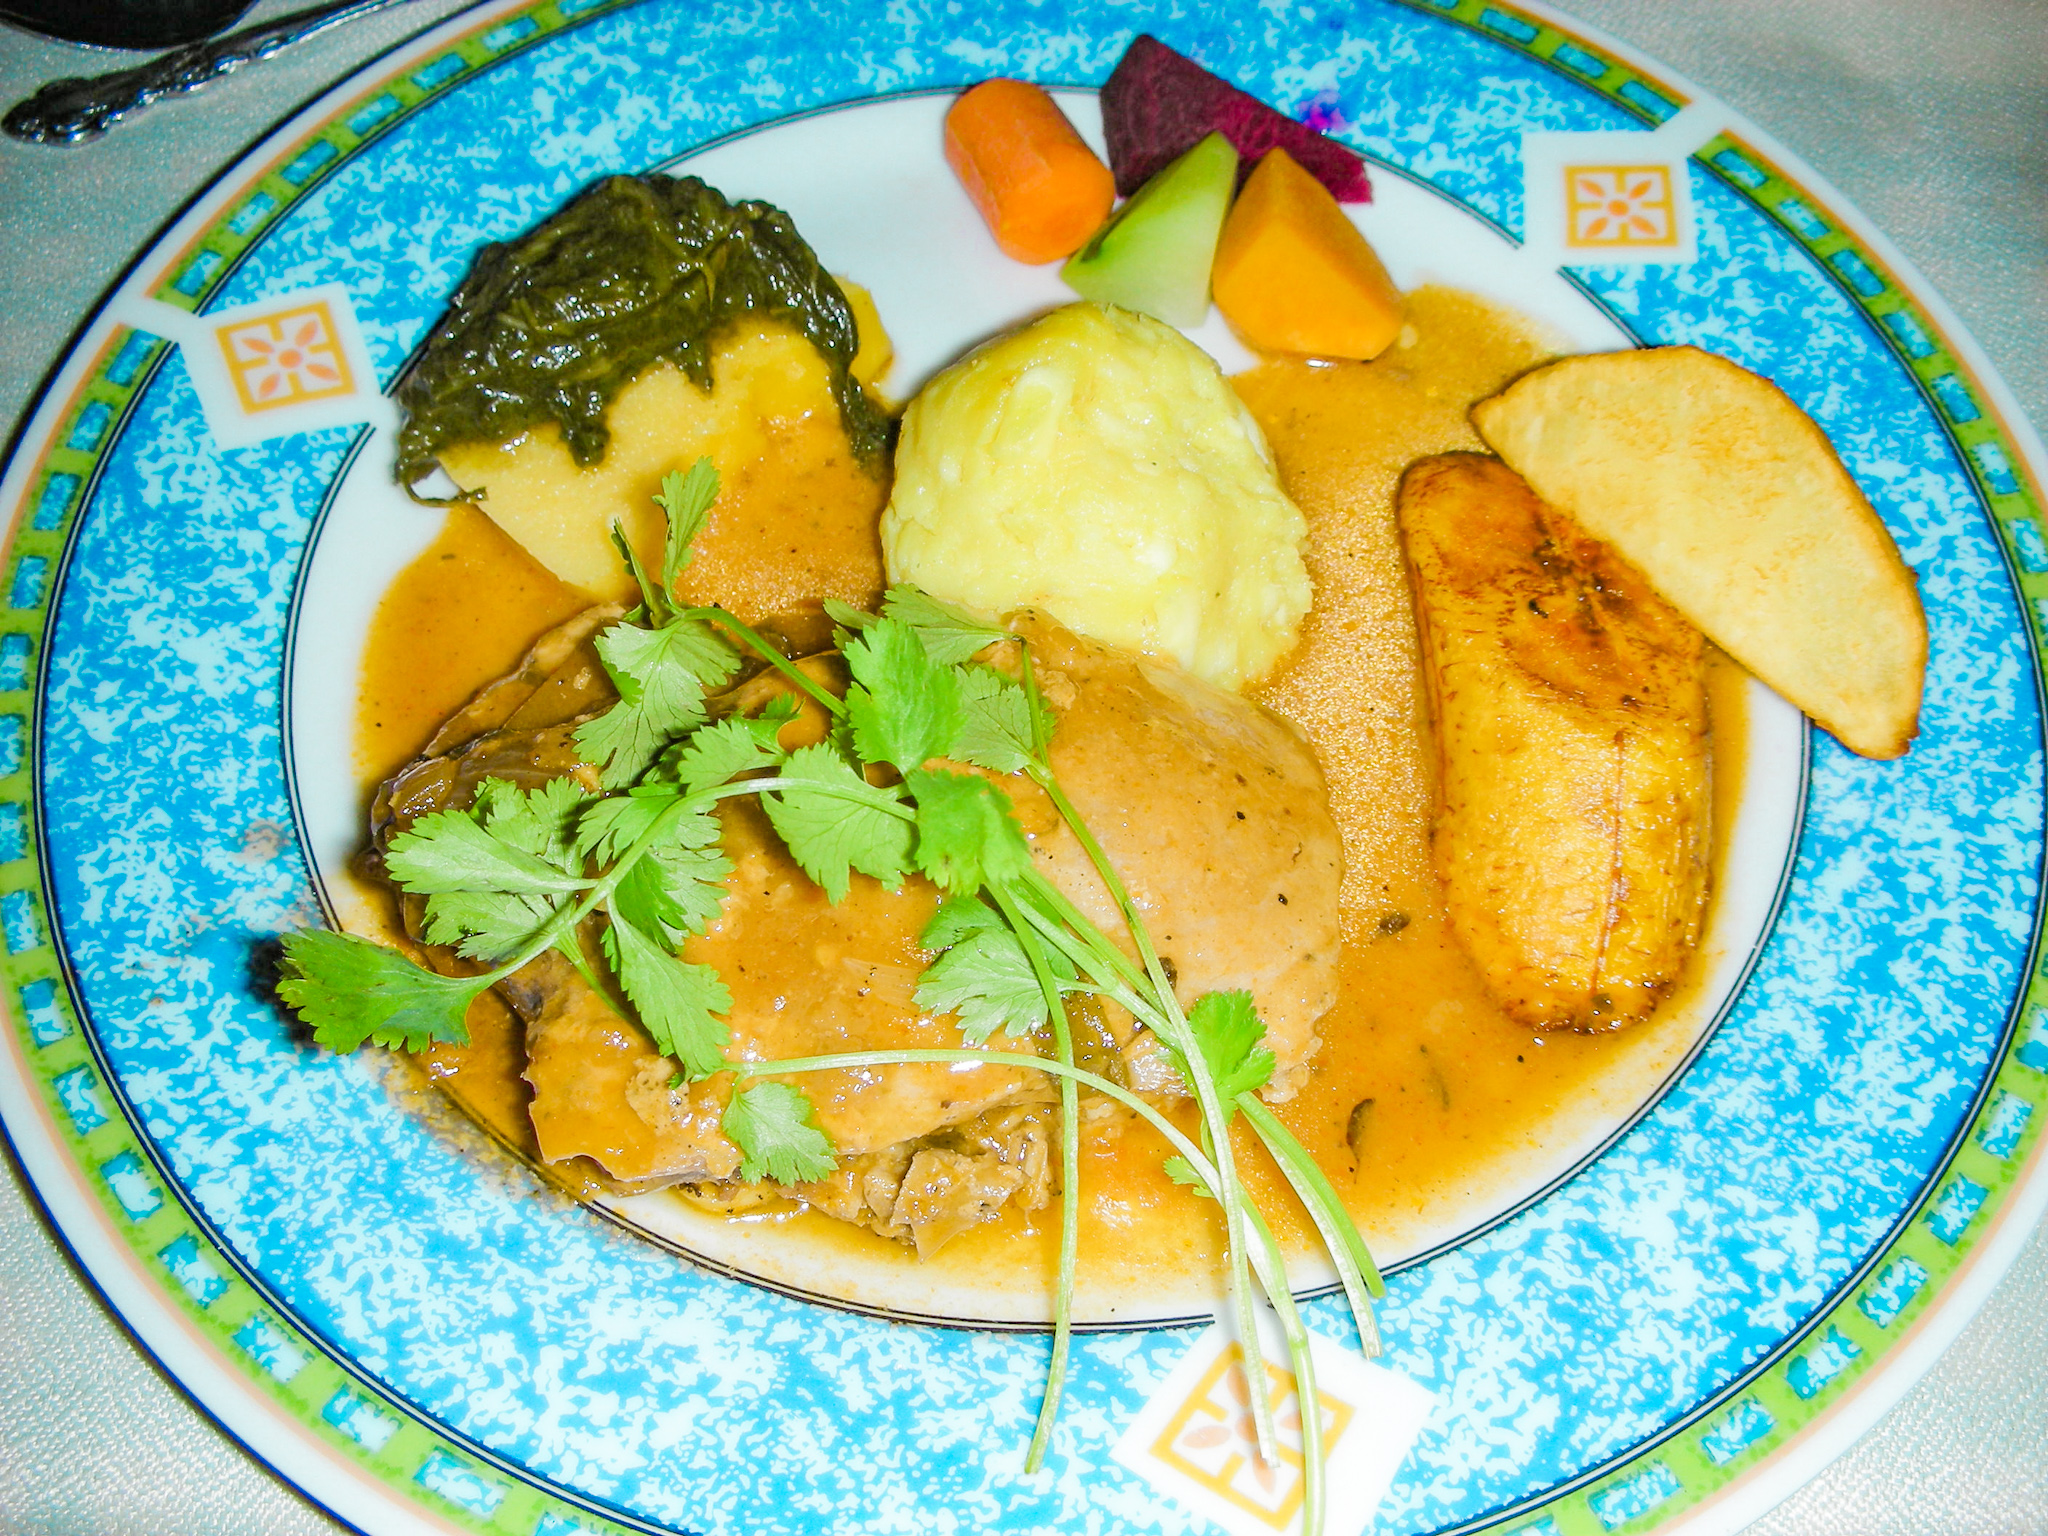 Local Grenadian Meal - Best Food in the Caribbean